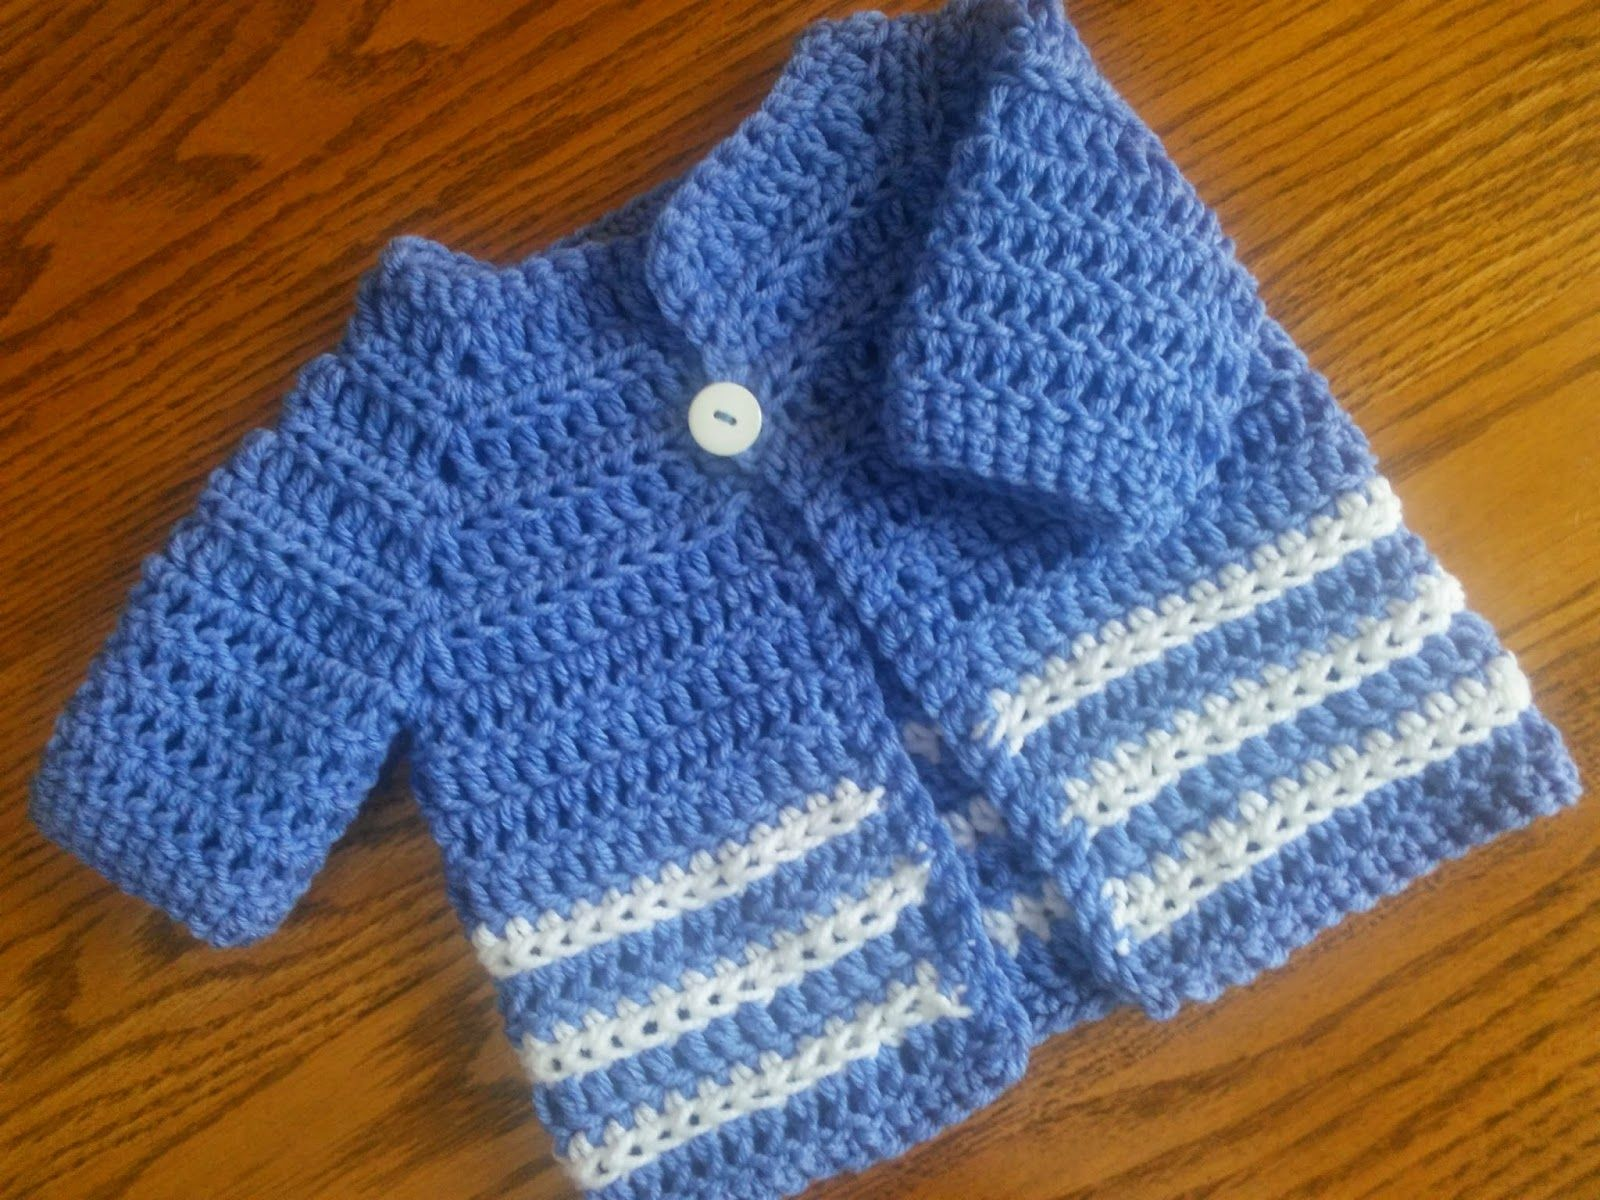 Baby Boy Sweater Crochet Pattern Easy | Crochet and other craftys ...